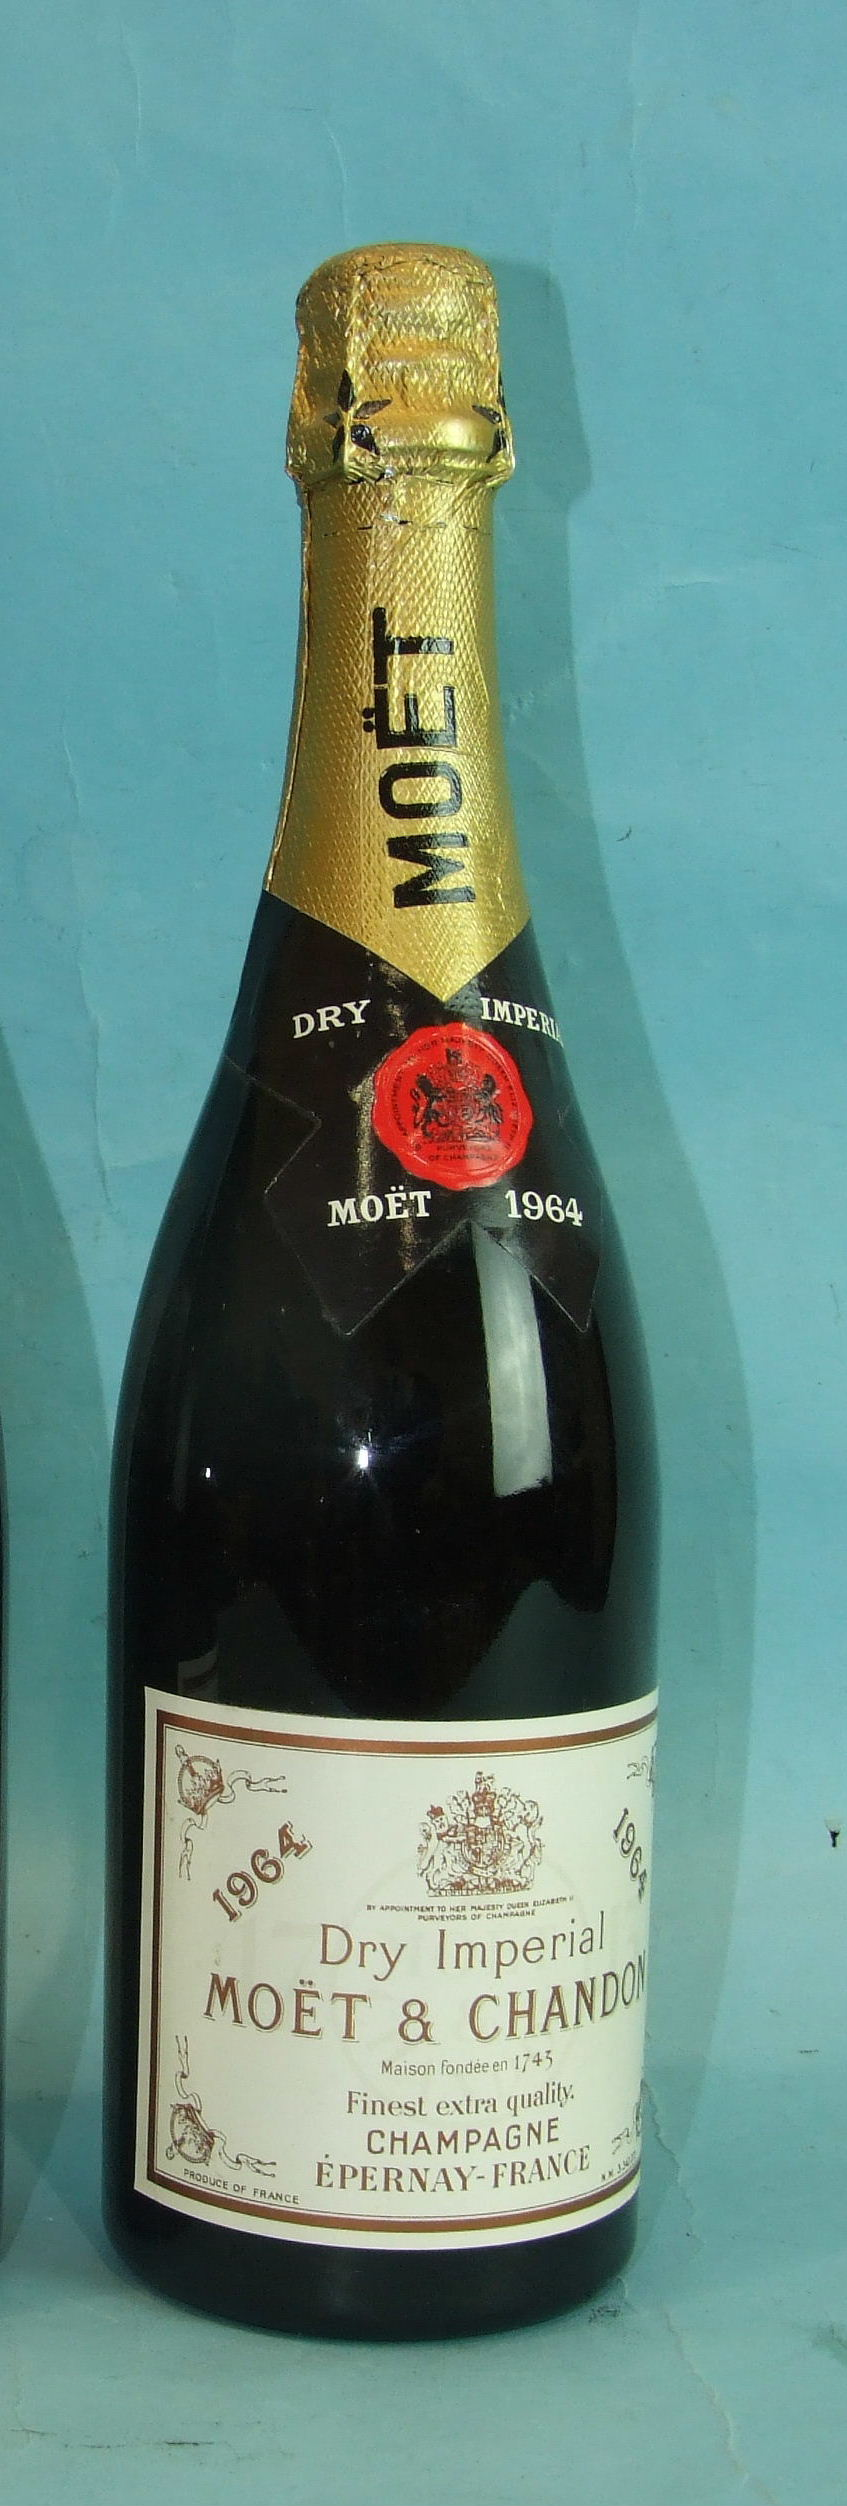 Lot 3 - Moët et Chandon Dry Imperial 1964 vintage Champagne, one bottle.